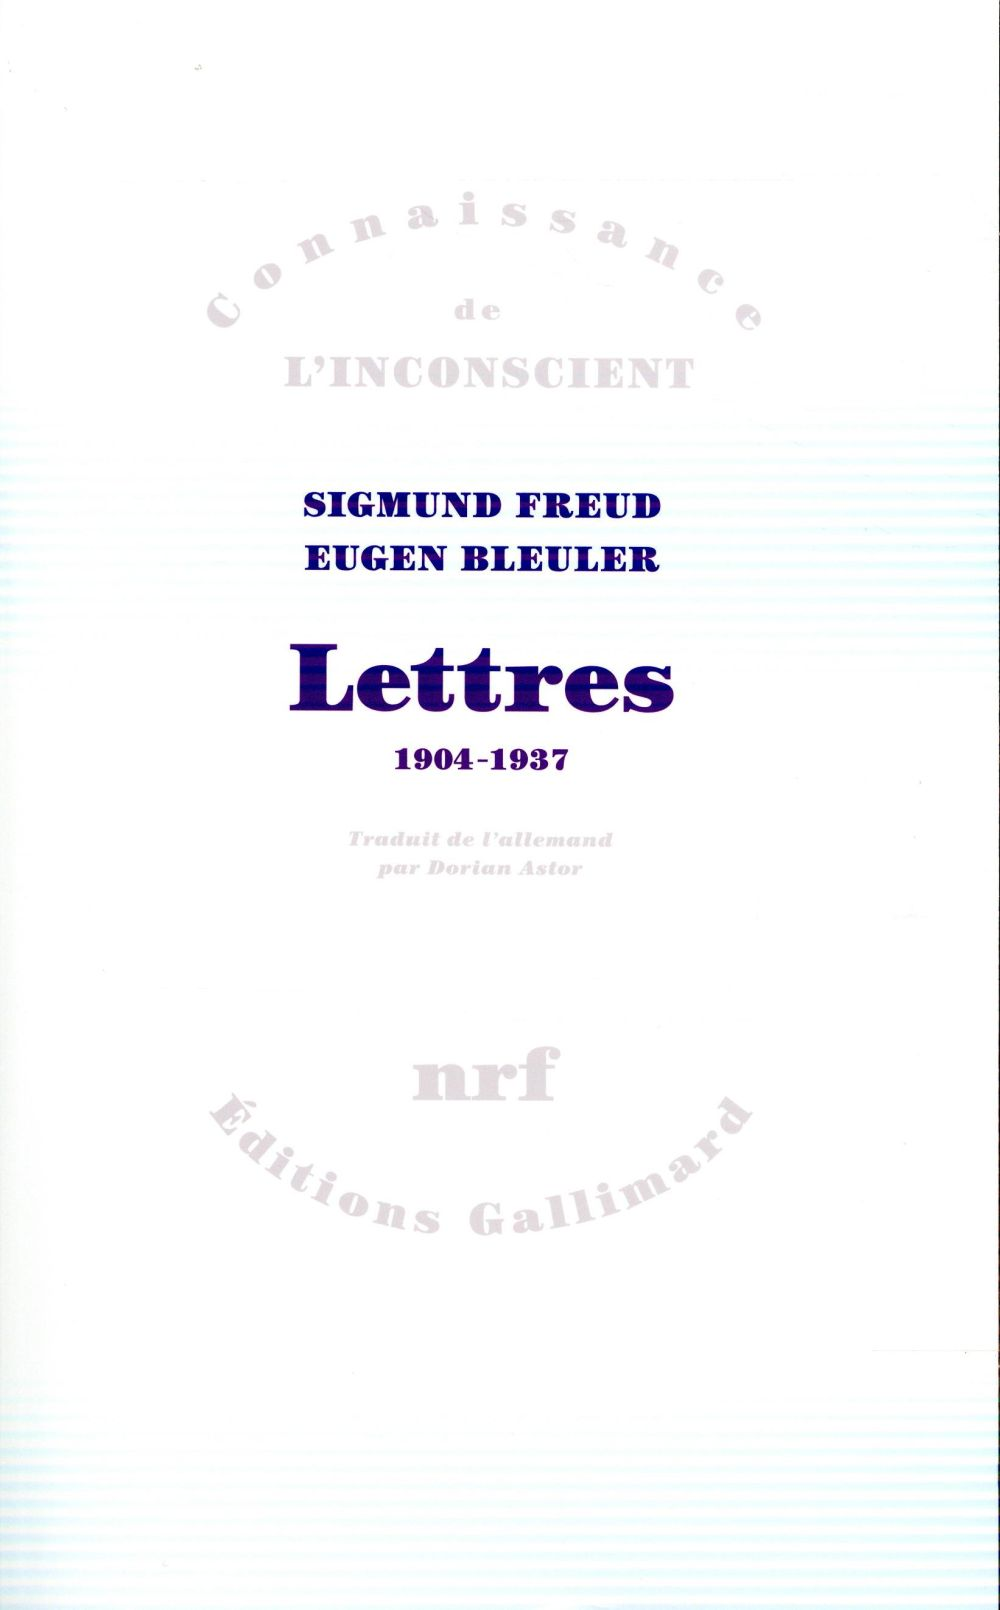 LETTRES - (1904-1937)